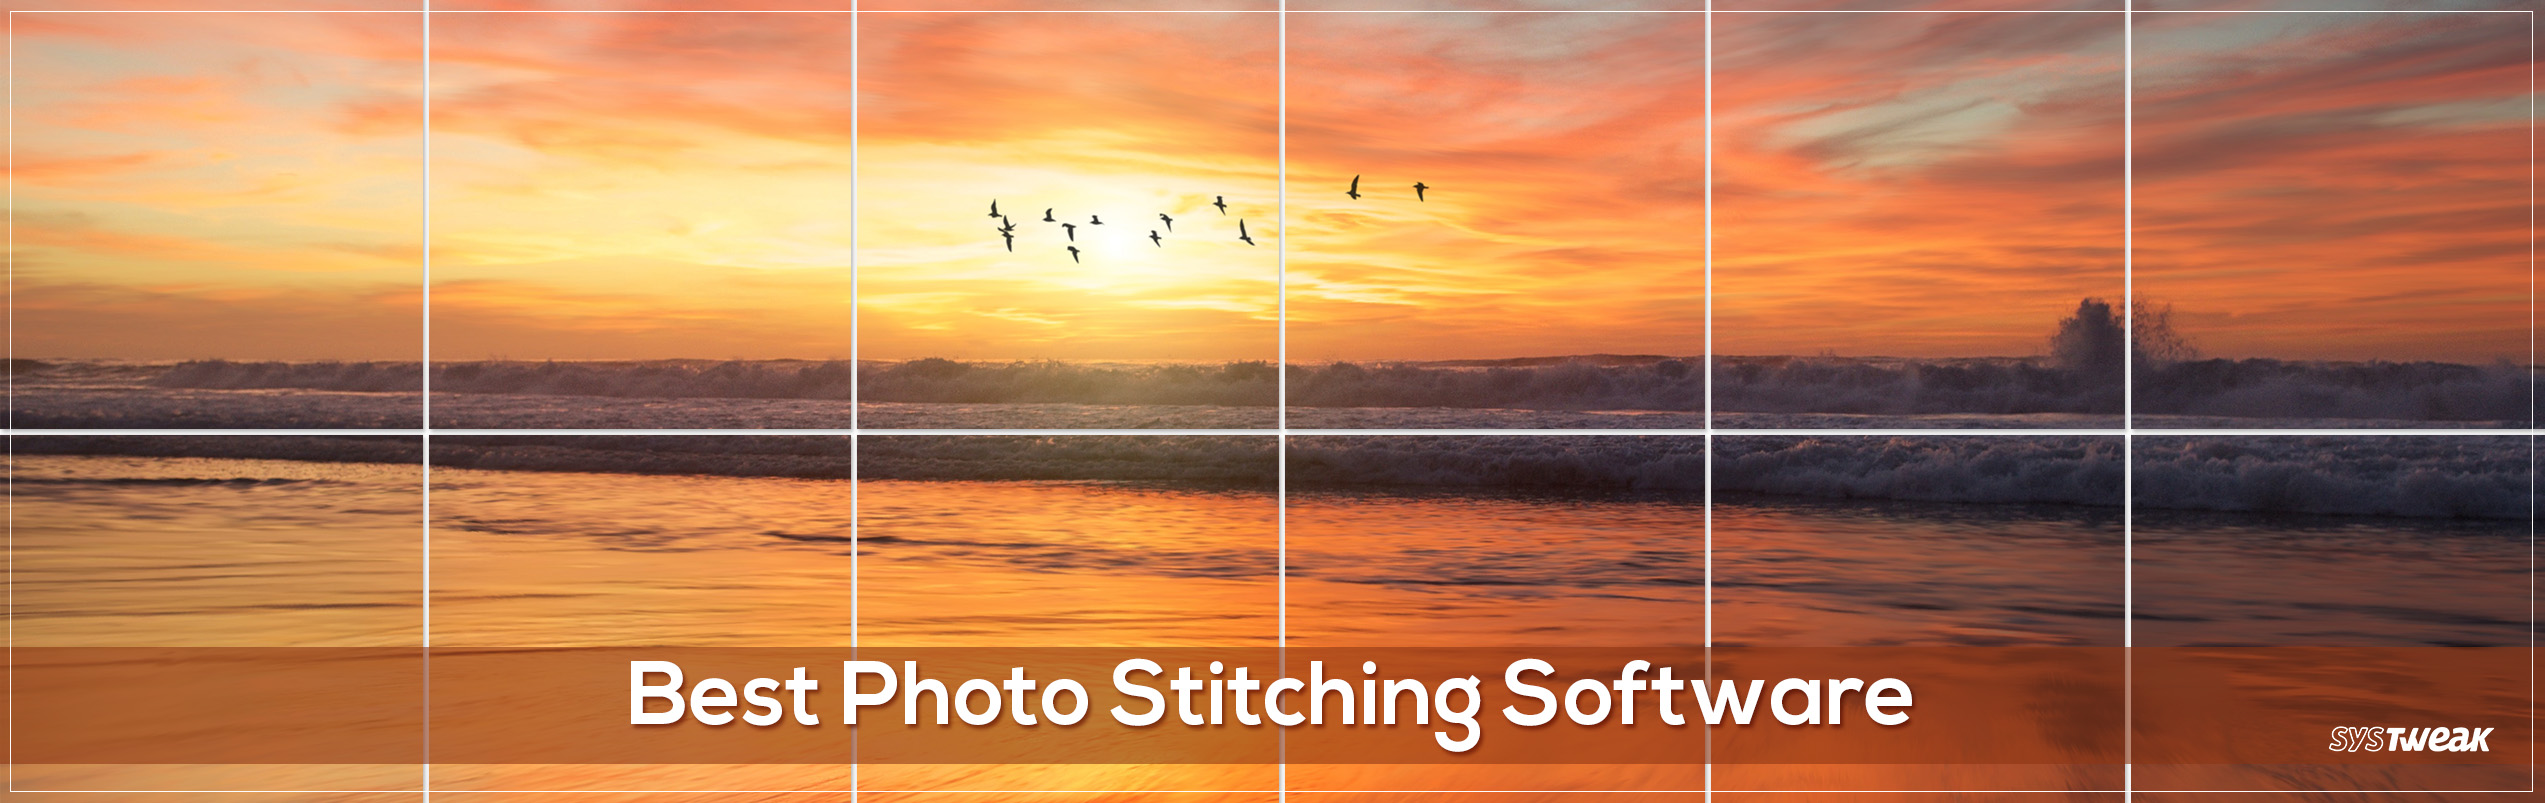 10 Best Photo Stitching Software For Windows